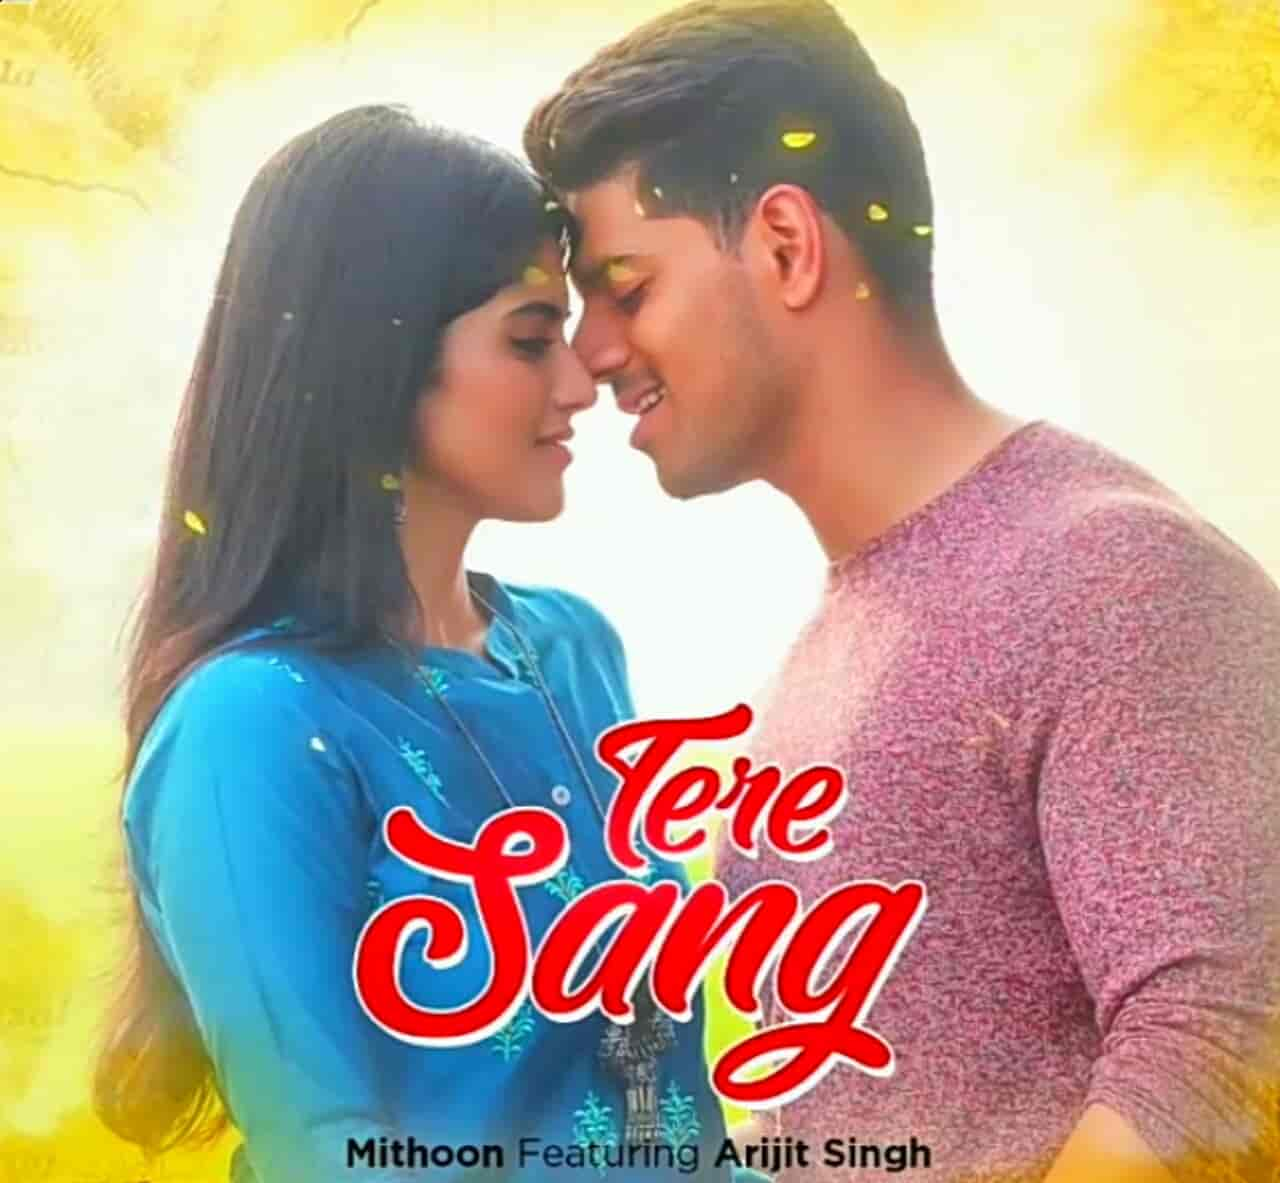 Tere Sang Satellite Shankar Song images